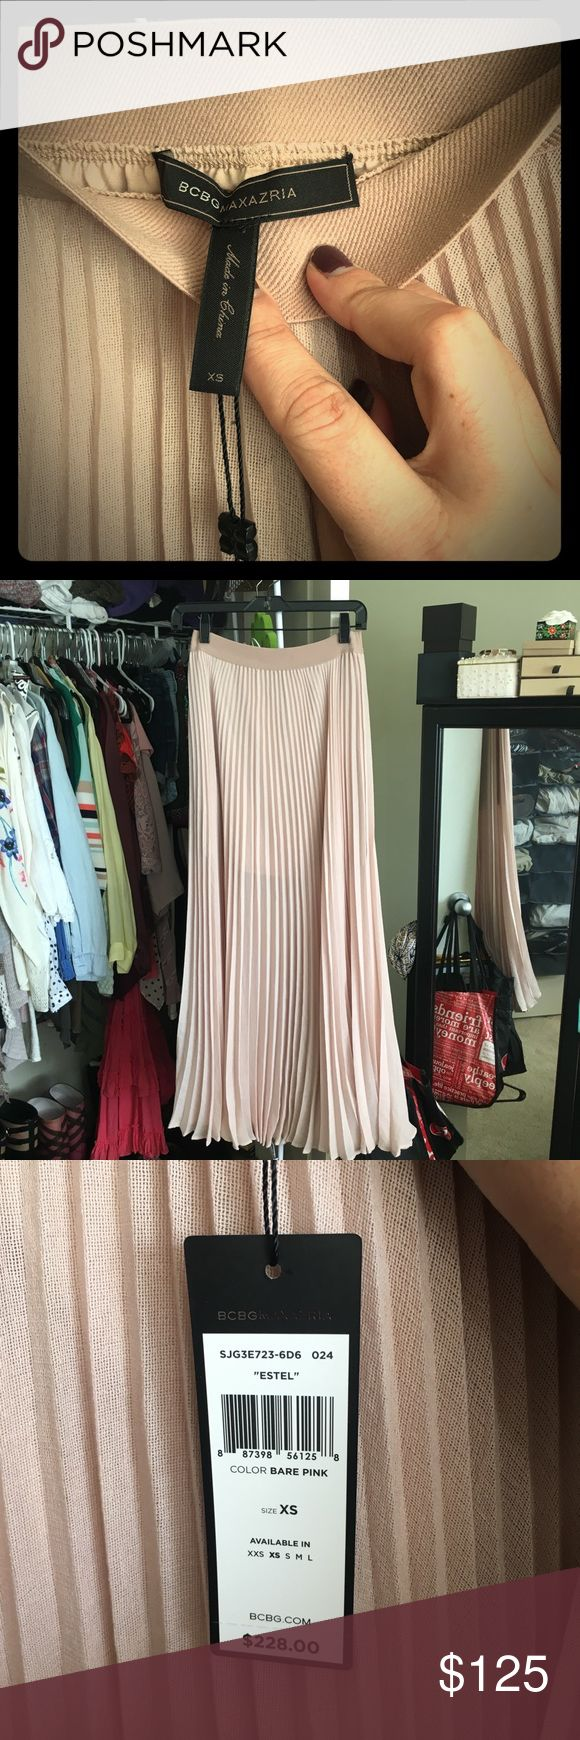 BCBG MAXAZRIA 'Pleated Maxi' NWT and NEVER WORN pleated Maxi skirt- - -GORG on!!!! Pale pink color- - - I'm a size 8 and it fits me perfectly! 🤑SEND ME A OFFER👈🏼🤑 BCBGMaxAzria Skirts Maxi